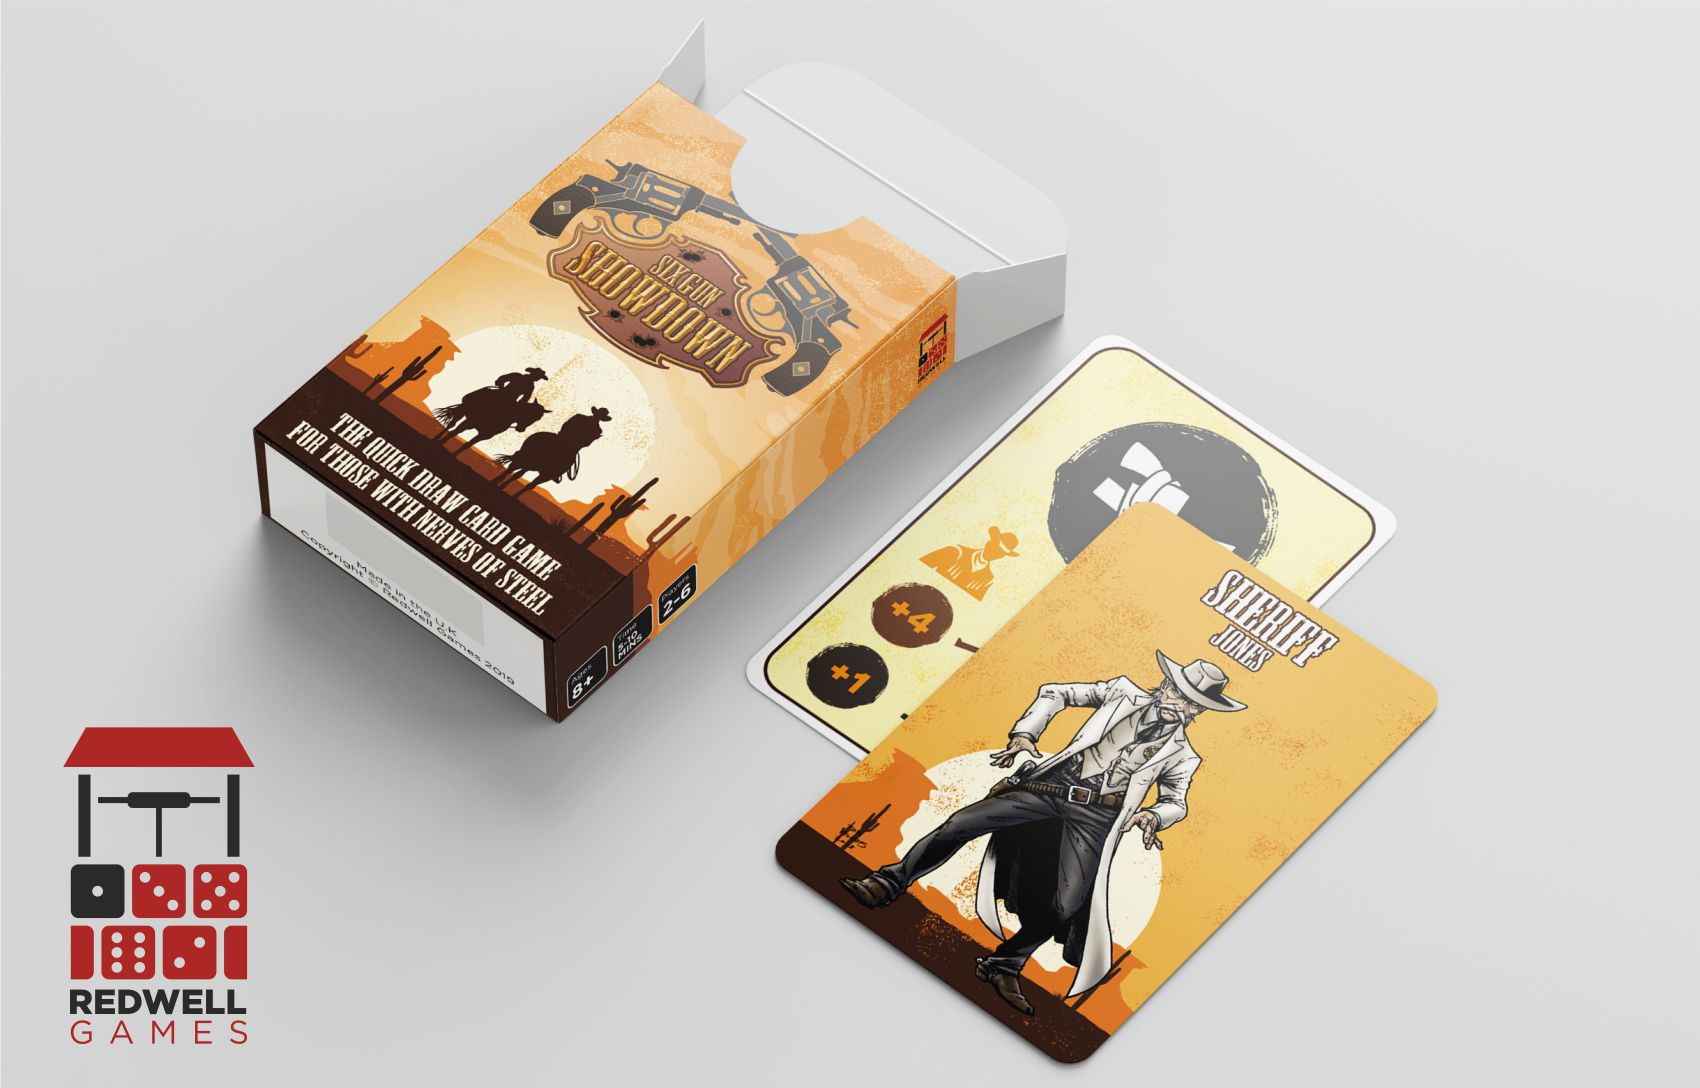 Packaging-Design-Mockup-Redwell-Games